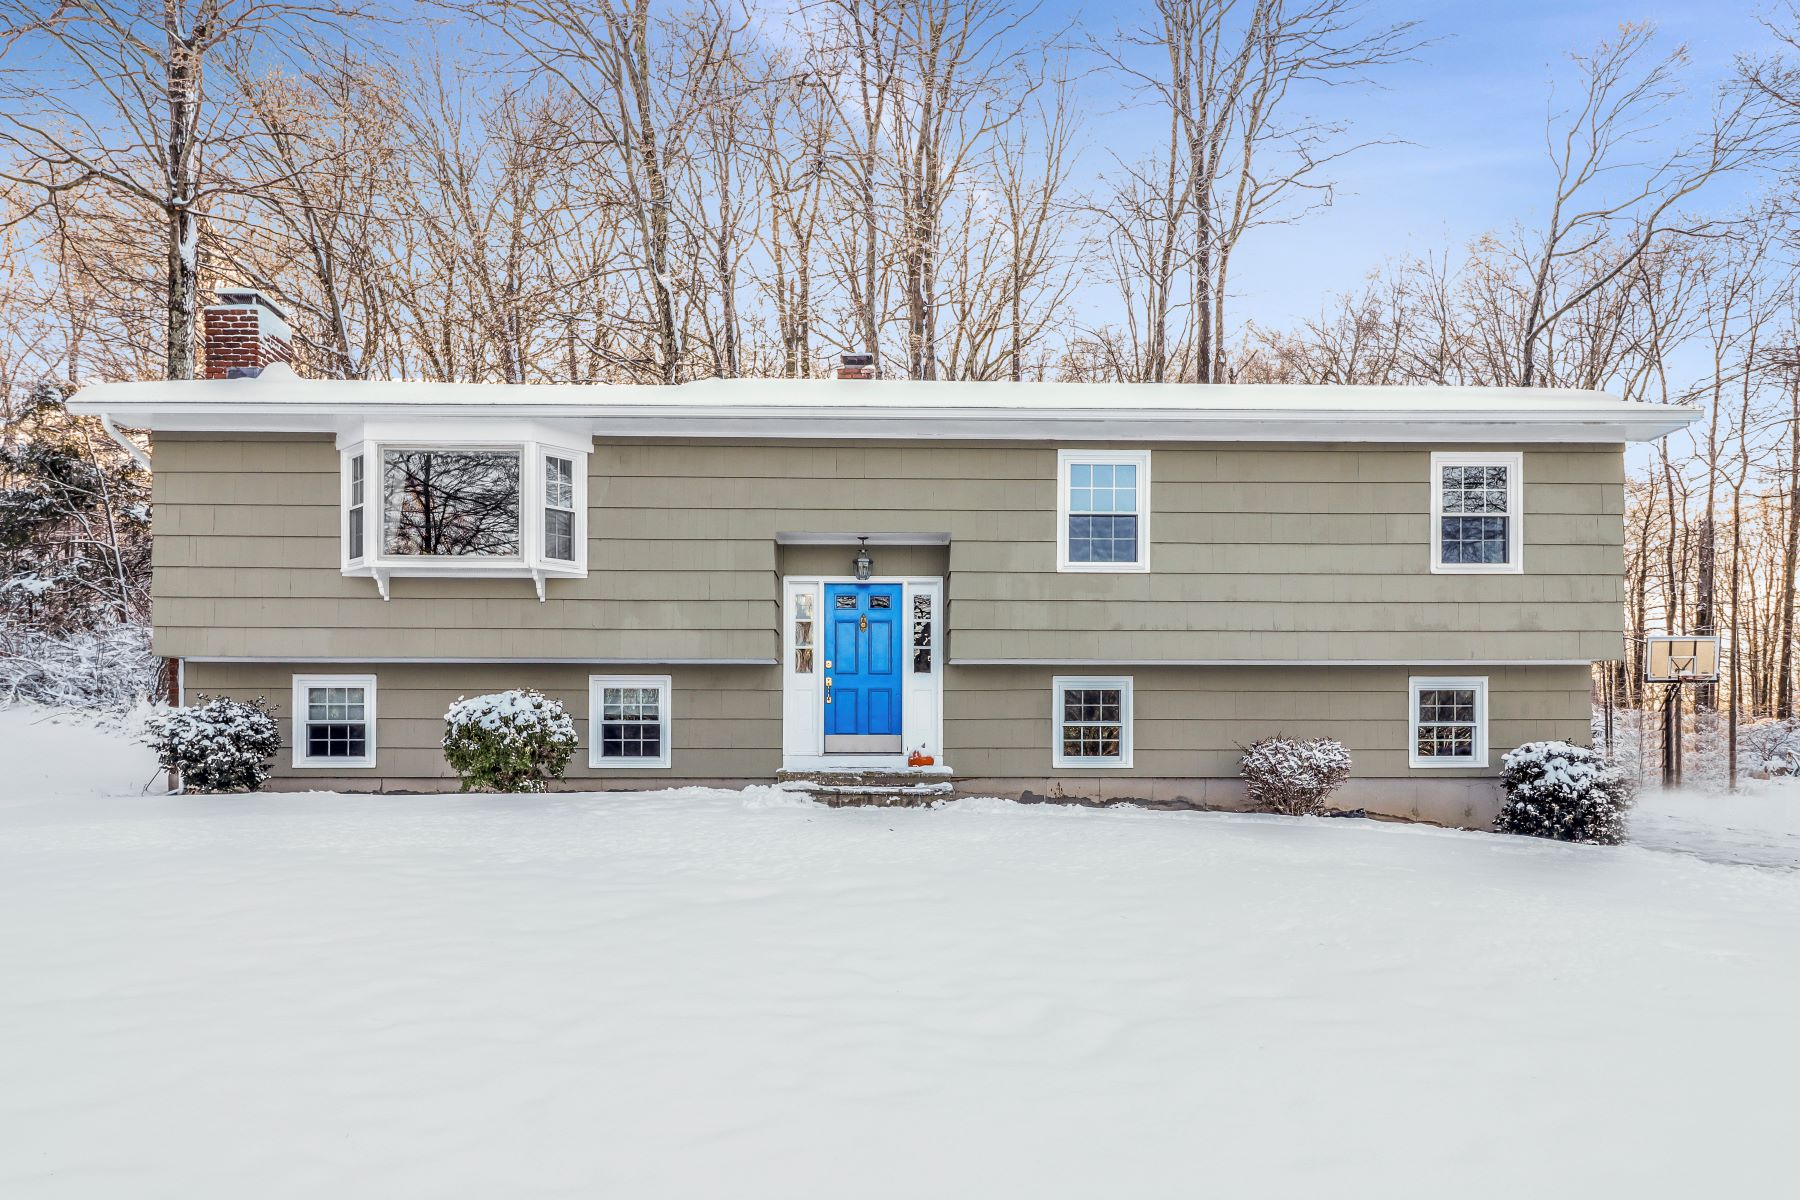 Single Family Homes for Sale at Charming Raised Ranch 222 Oak Hill Drive, Southbury, Connecticut 06488 United States